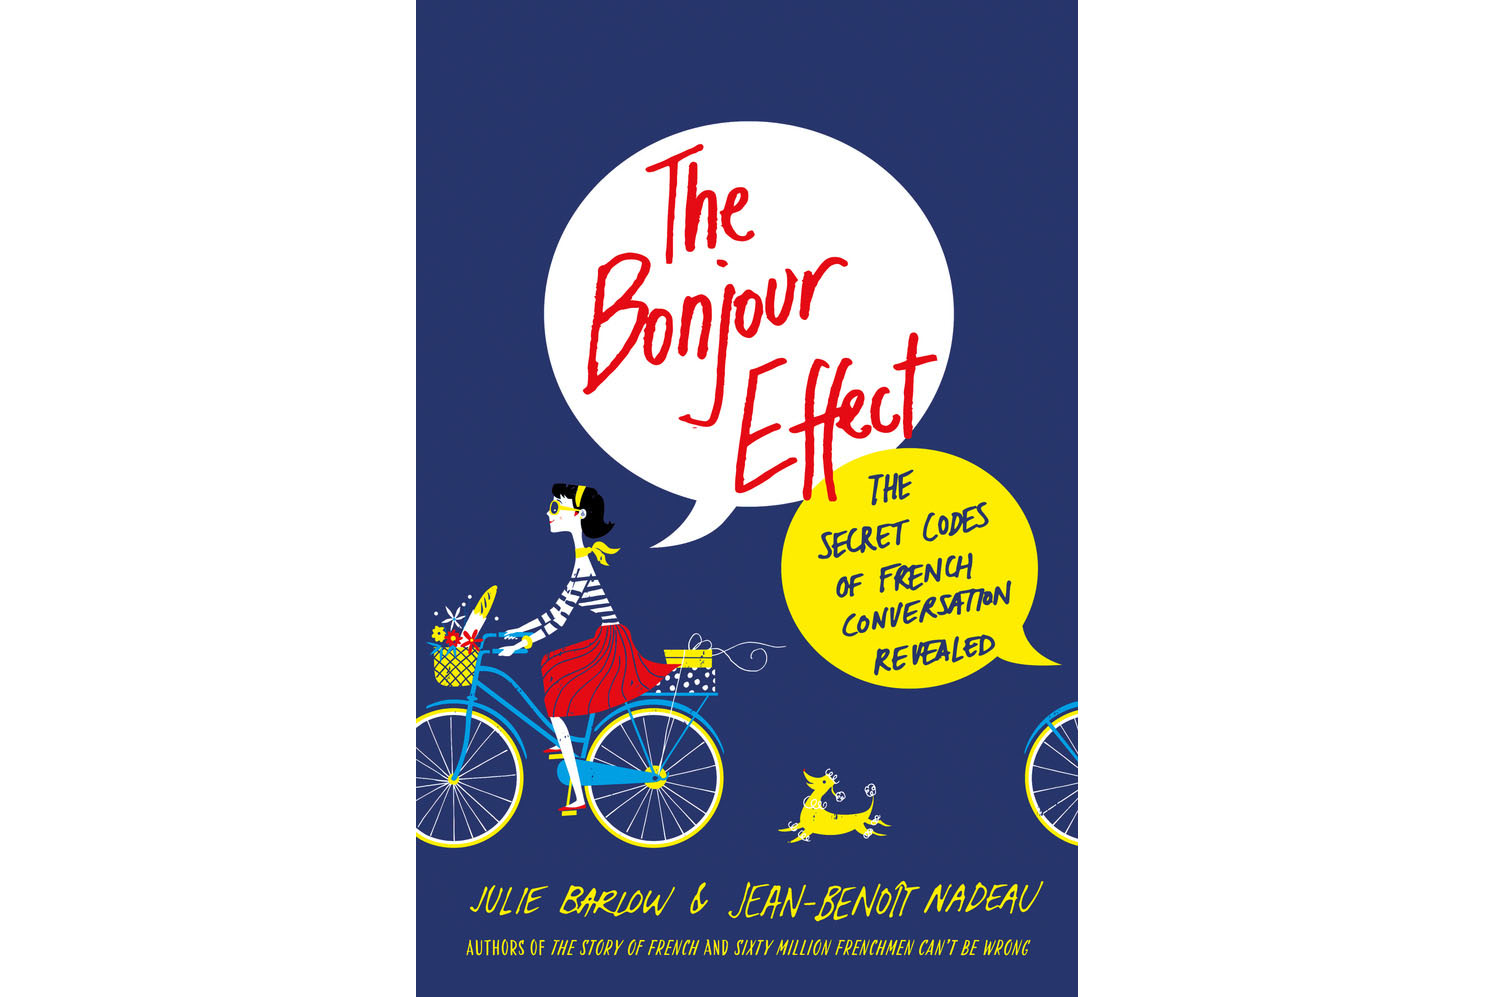 The Bonjour Effect: The Secret Codes of French Conversation Revealed, by Julie Barlow